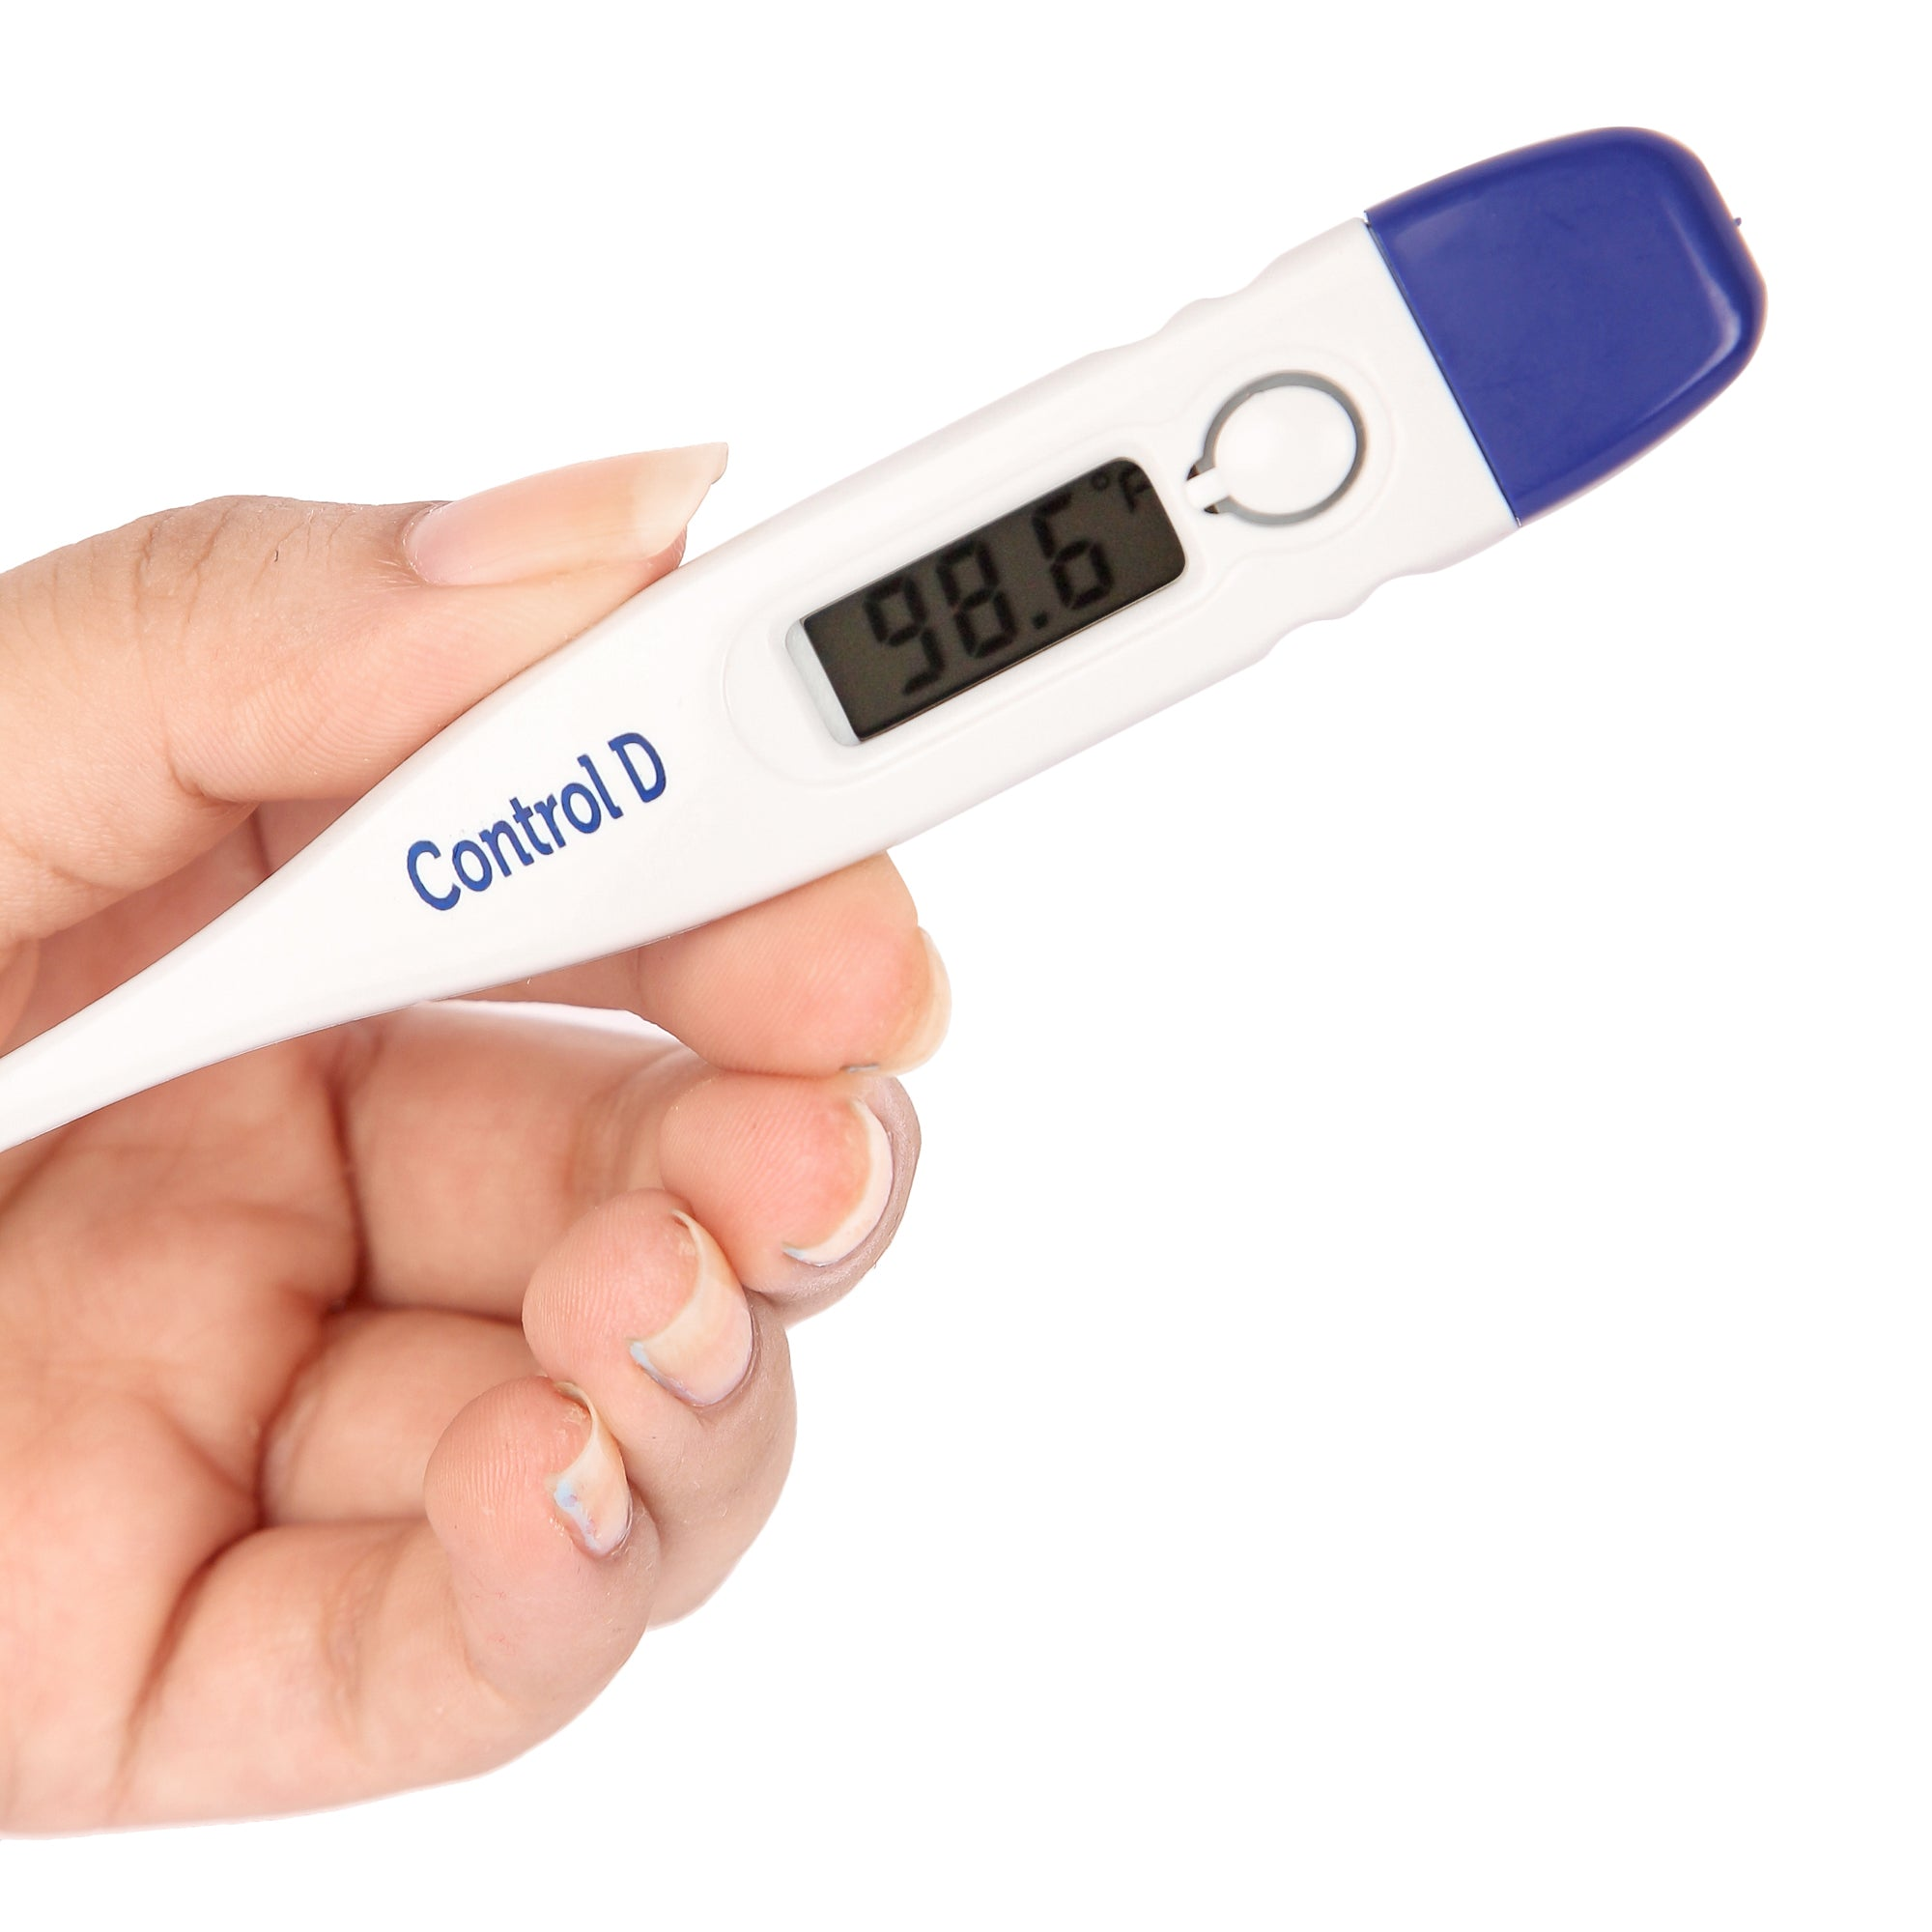 Control D Digital Thermometer